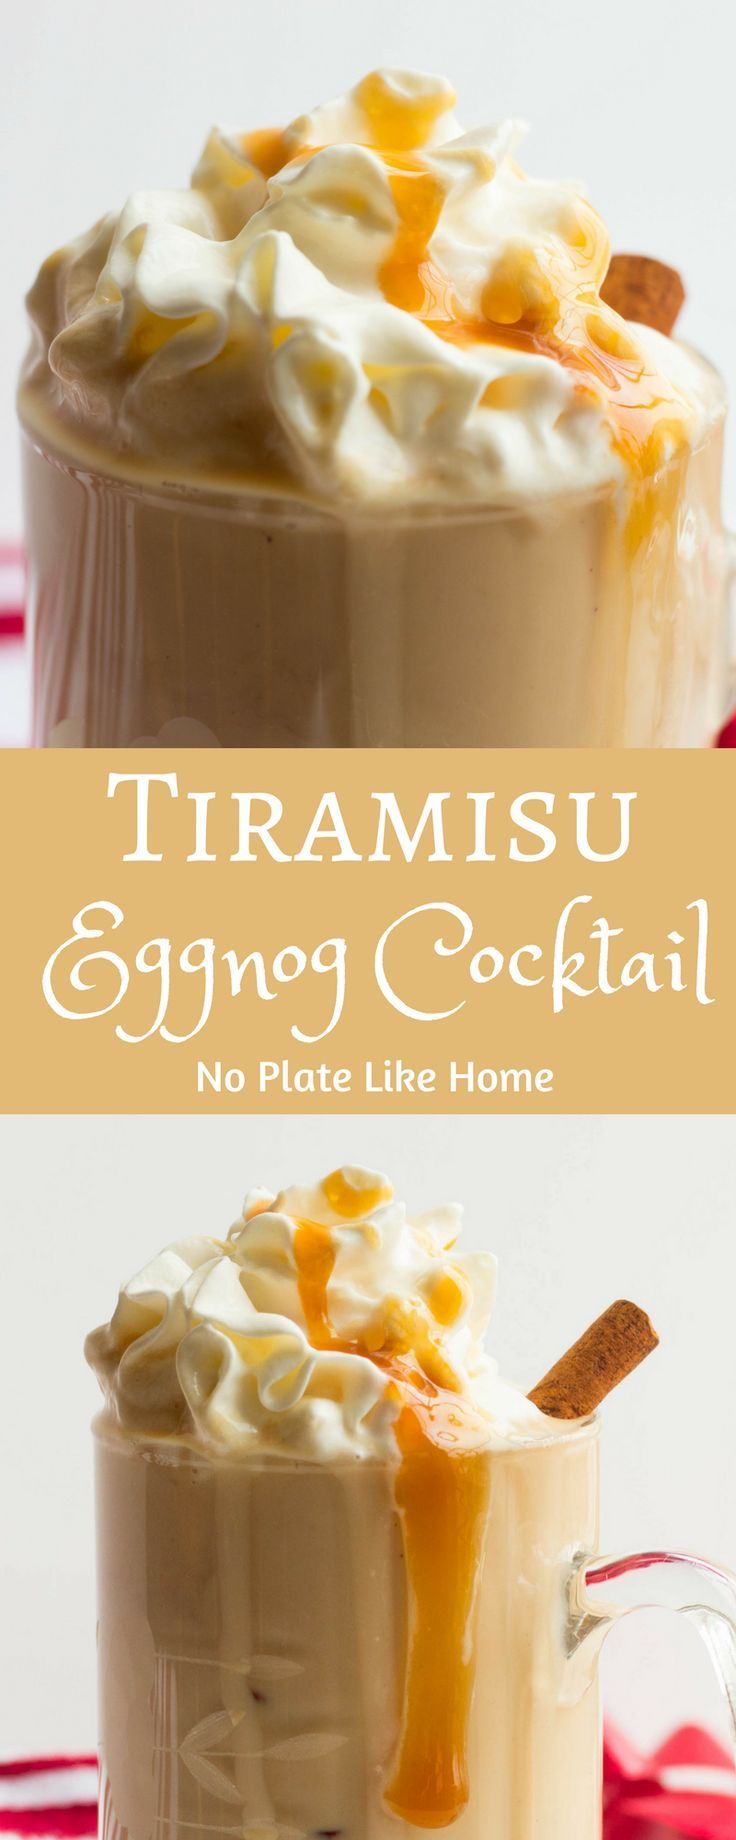 Tiramisu Eggnog Cocktail is simple new spin on a traditional holiday eggnog. This easy recipe has a yummy tiramisu flavor with coffee liquor, chocolate syrup, white rum alcohol topped with whipped cream!. Pitcher recipe included. Pin for later. #eggnog #cocktail #xmasrecipes #alcohol #spikeddrinks